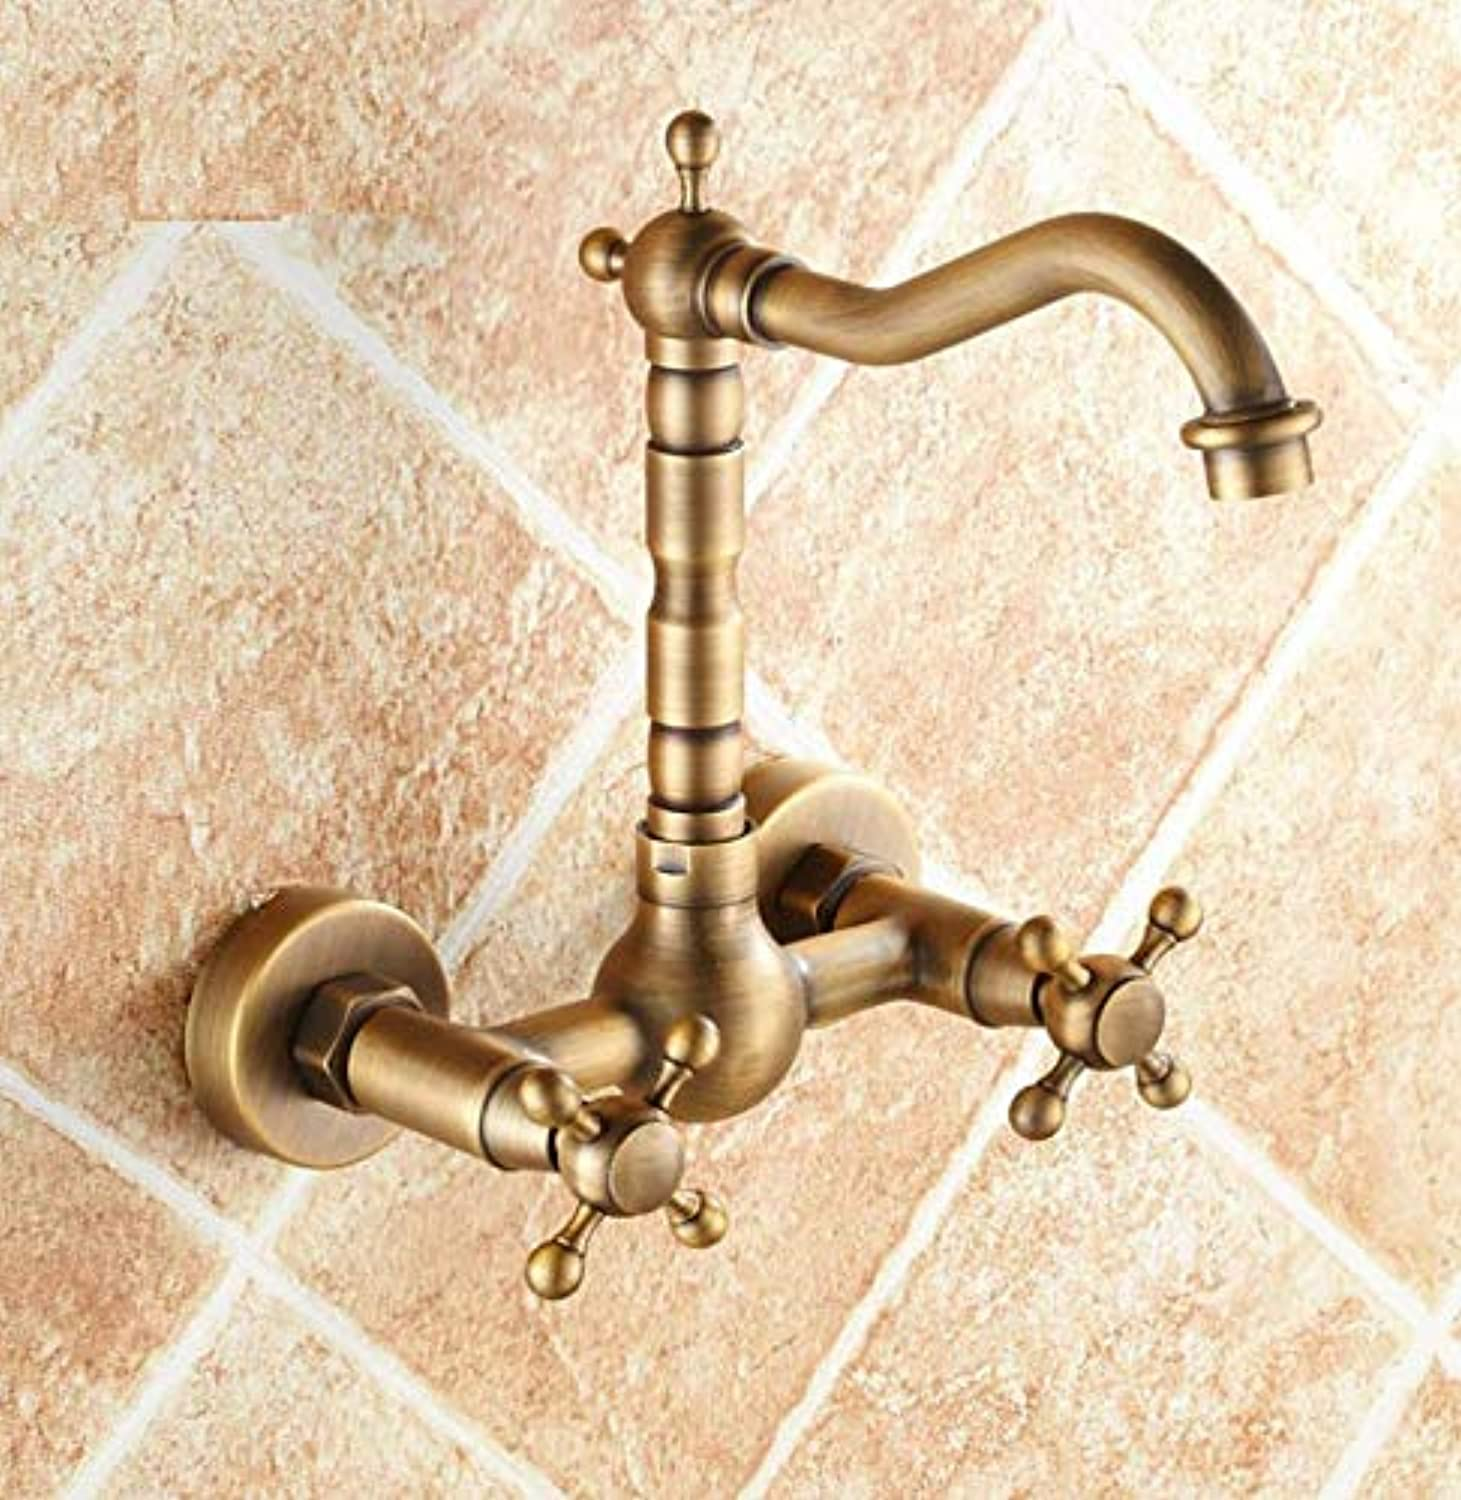 Dwthh New Retro Basin Faucet gold Brass Double Handle Wall Mounted Bathroom Sink Faucet Hot Cold Tap in-Wall Bathroom Tap